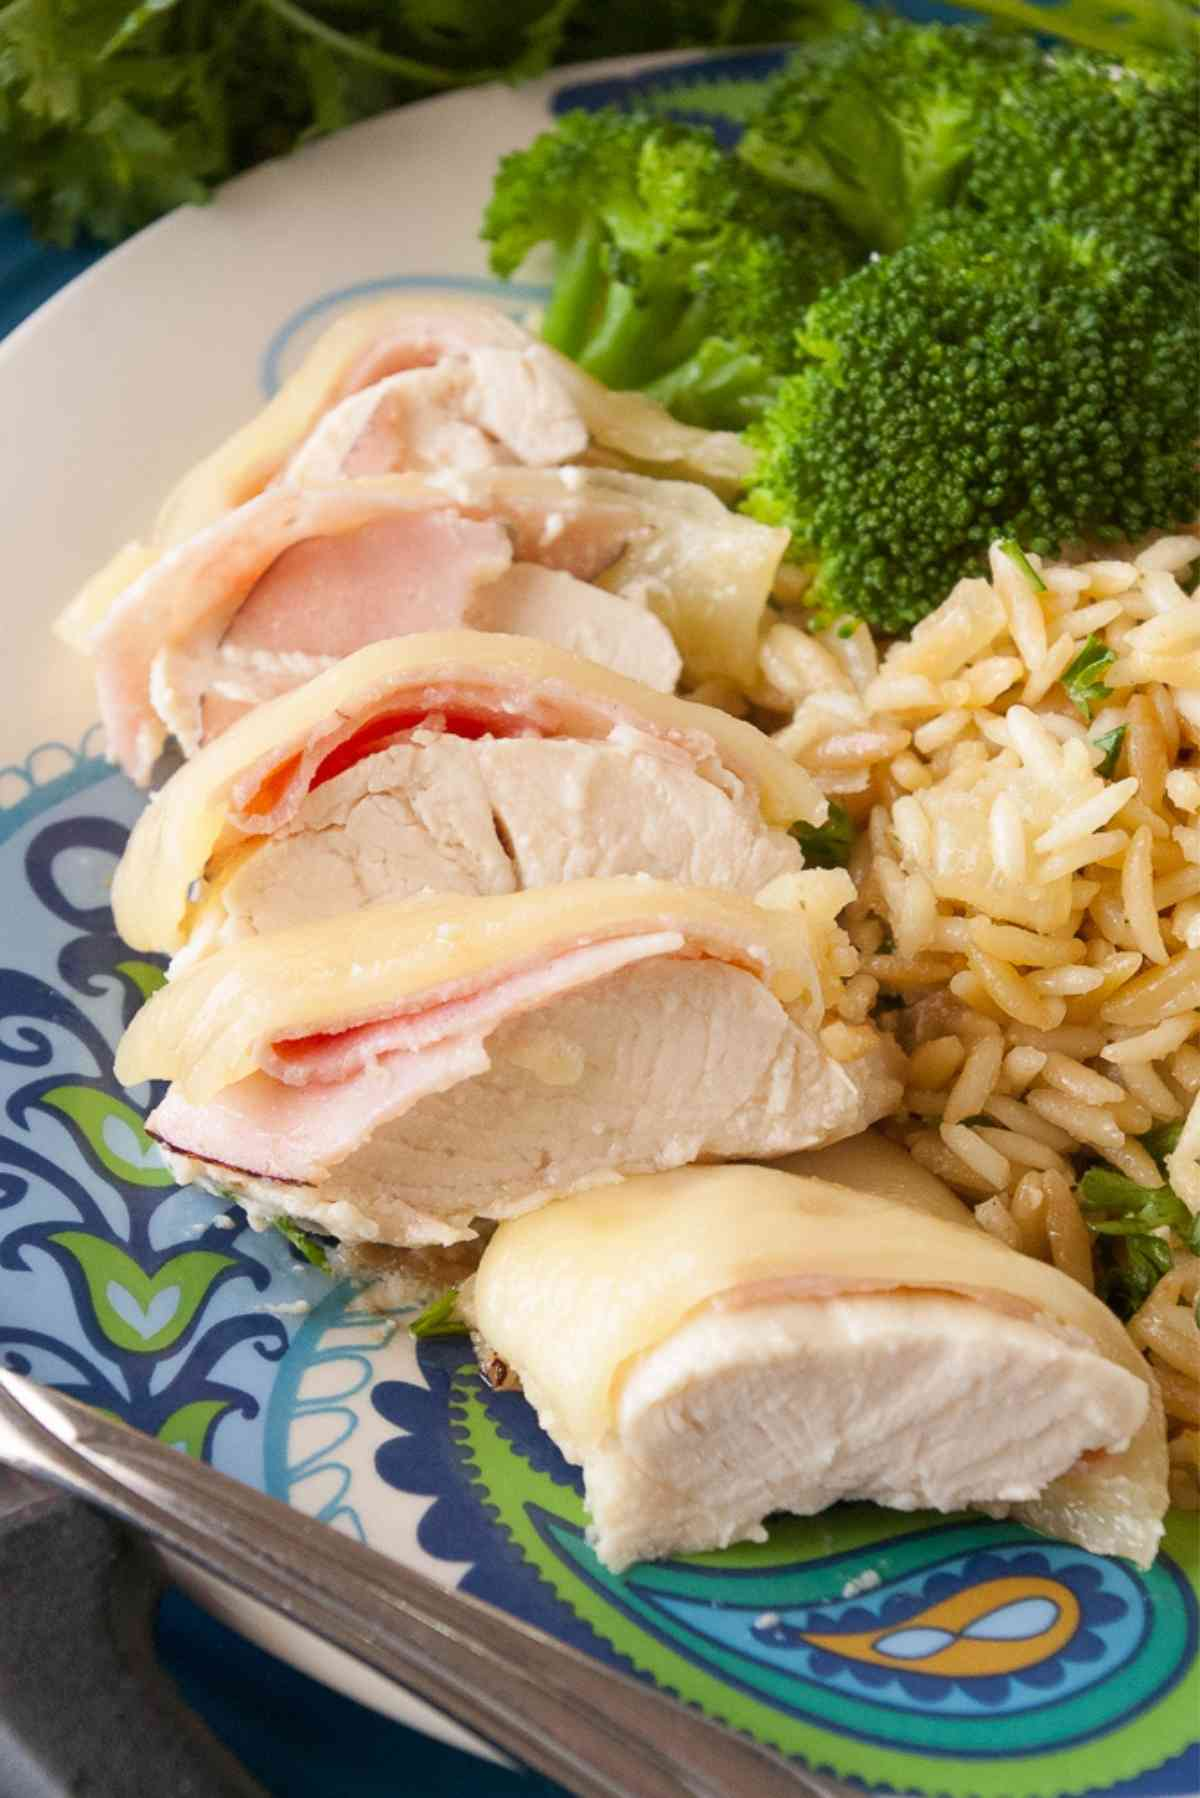 A plate with chicken cordon bleu, broccoli and rice.